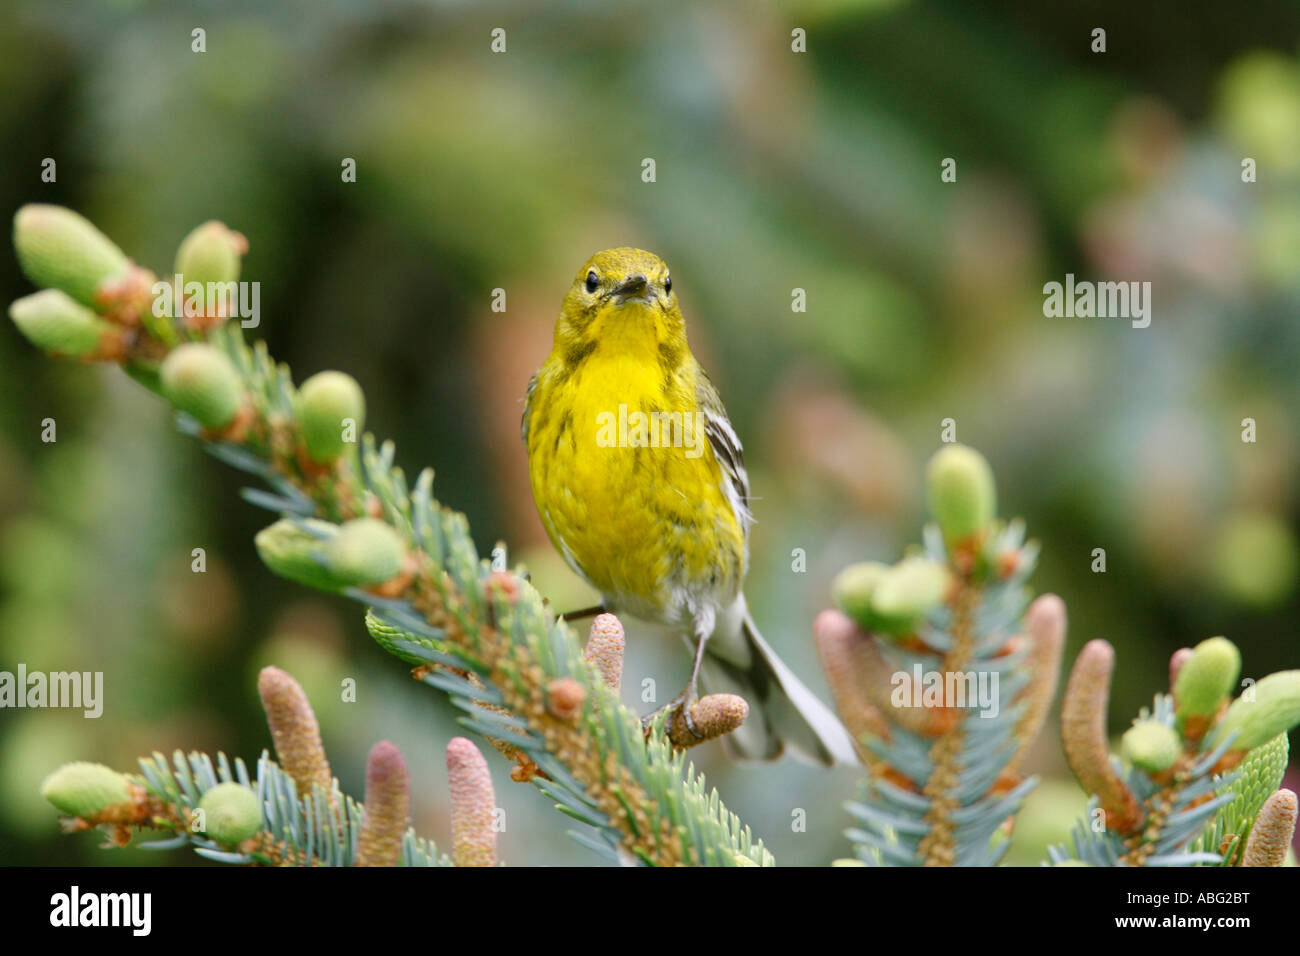 Pine Warbler Perched in Alcocks Spruce - Stock Image